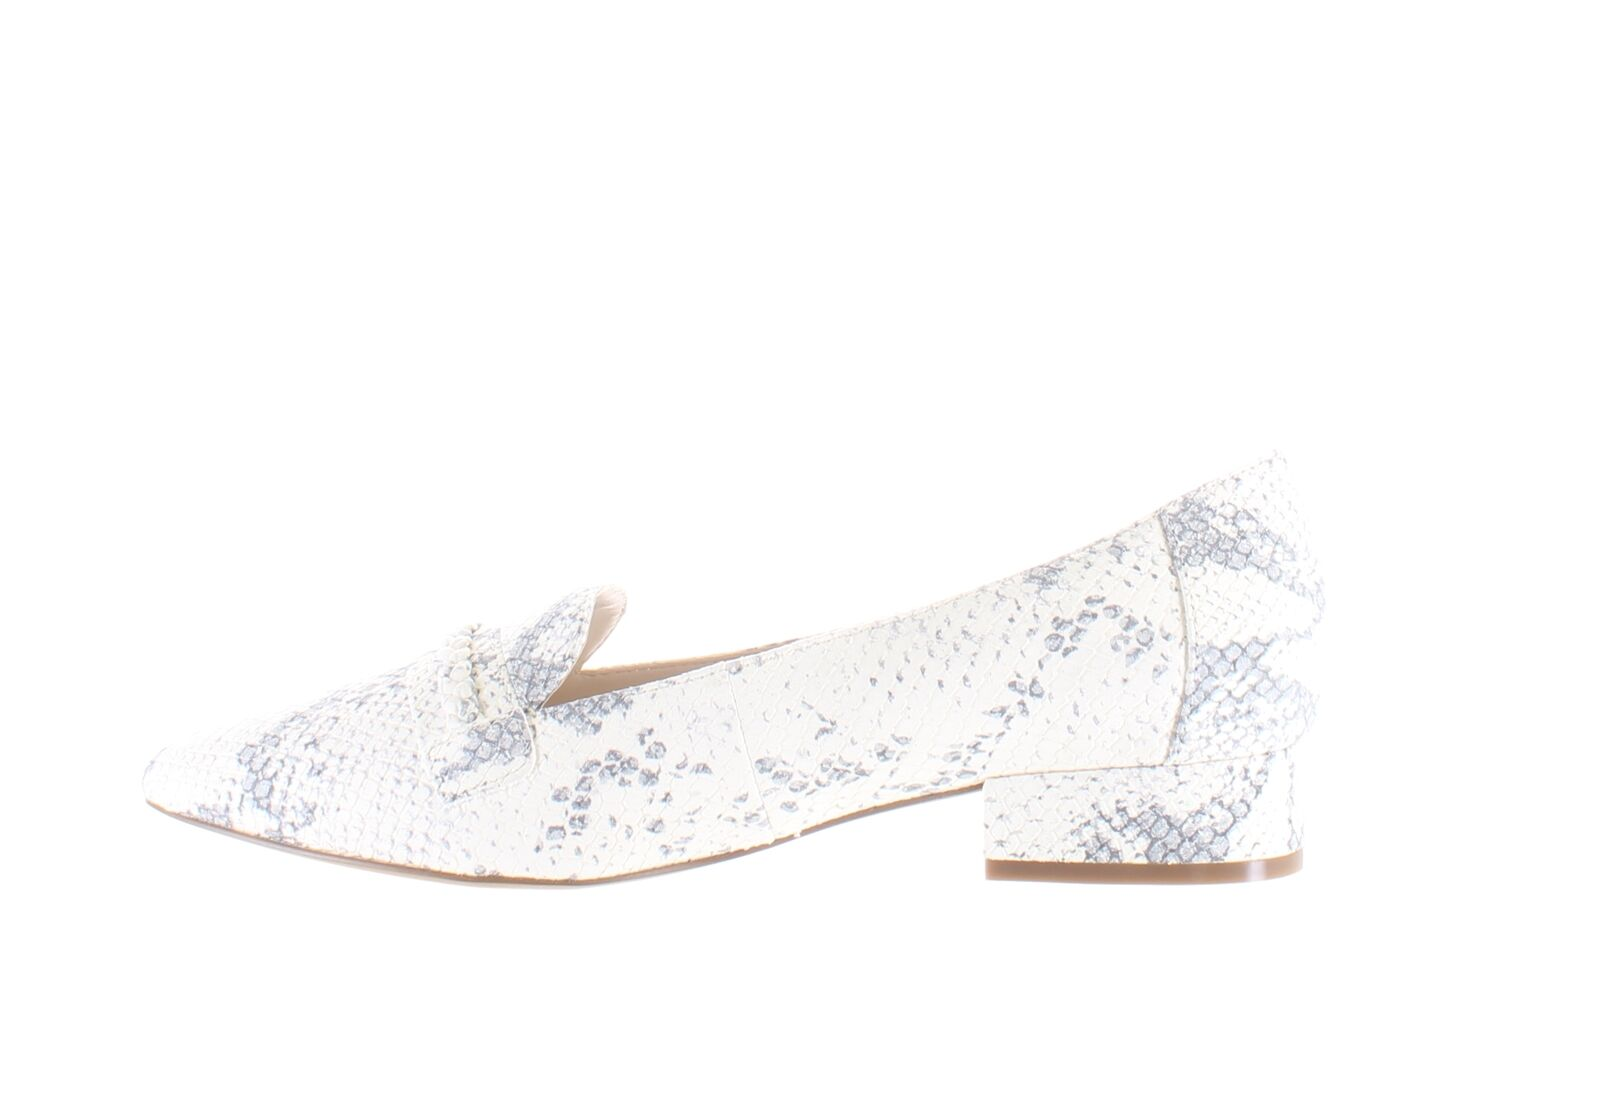 Cole Haan Womens Mabel Chalk Python Print Leather Loafers Size 8 (2099345)